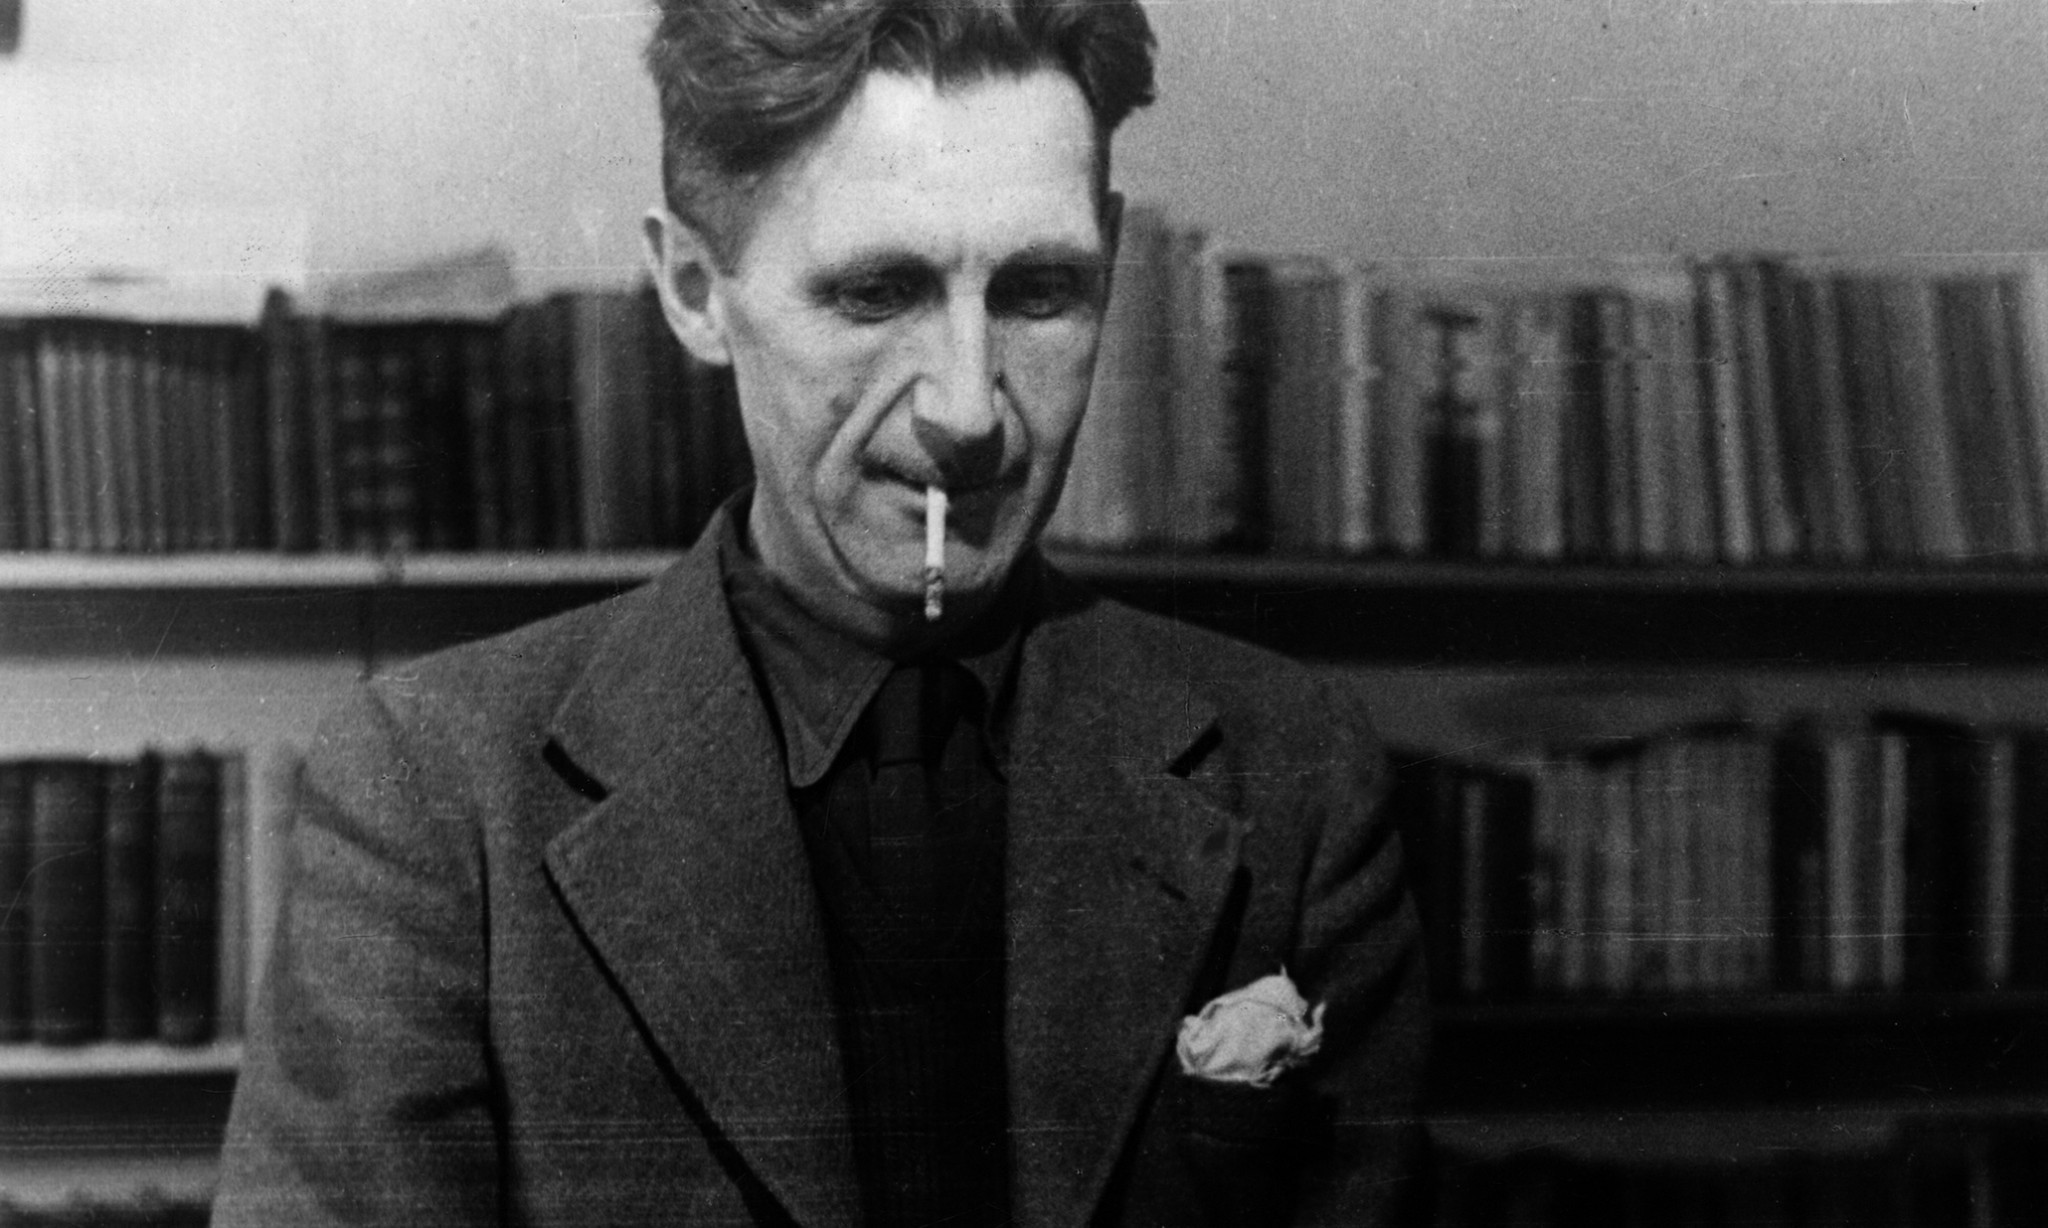 If I were king for a day, George Orwell would be my language consultant